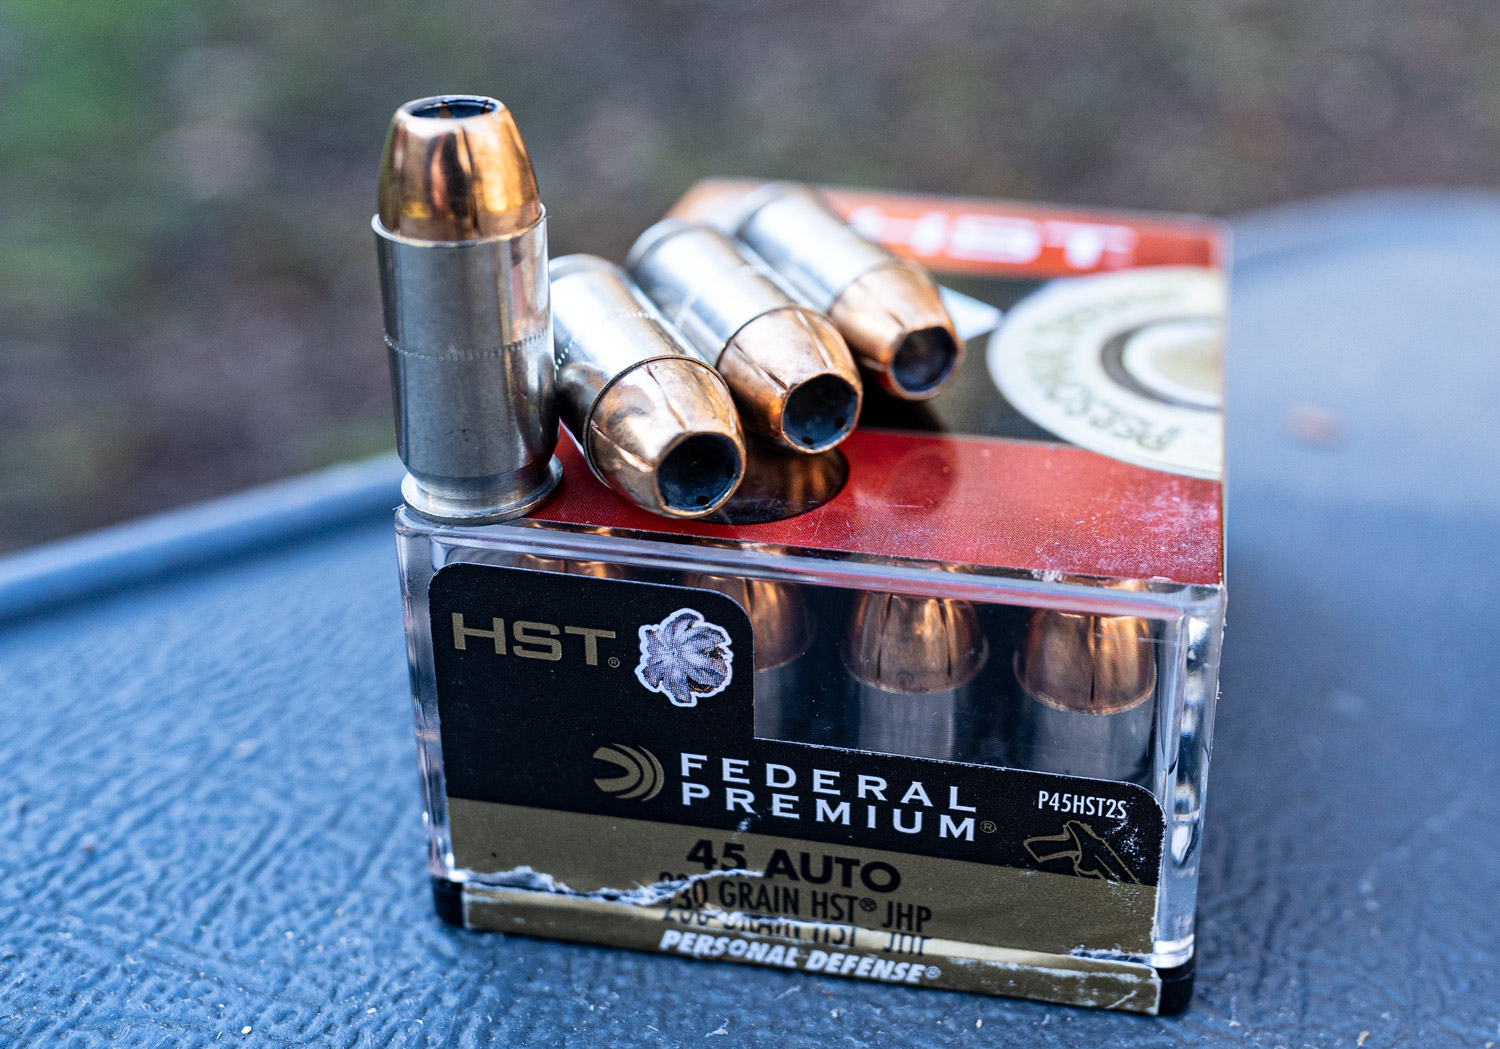 Federal 45 ACP hollow point ammunition